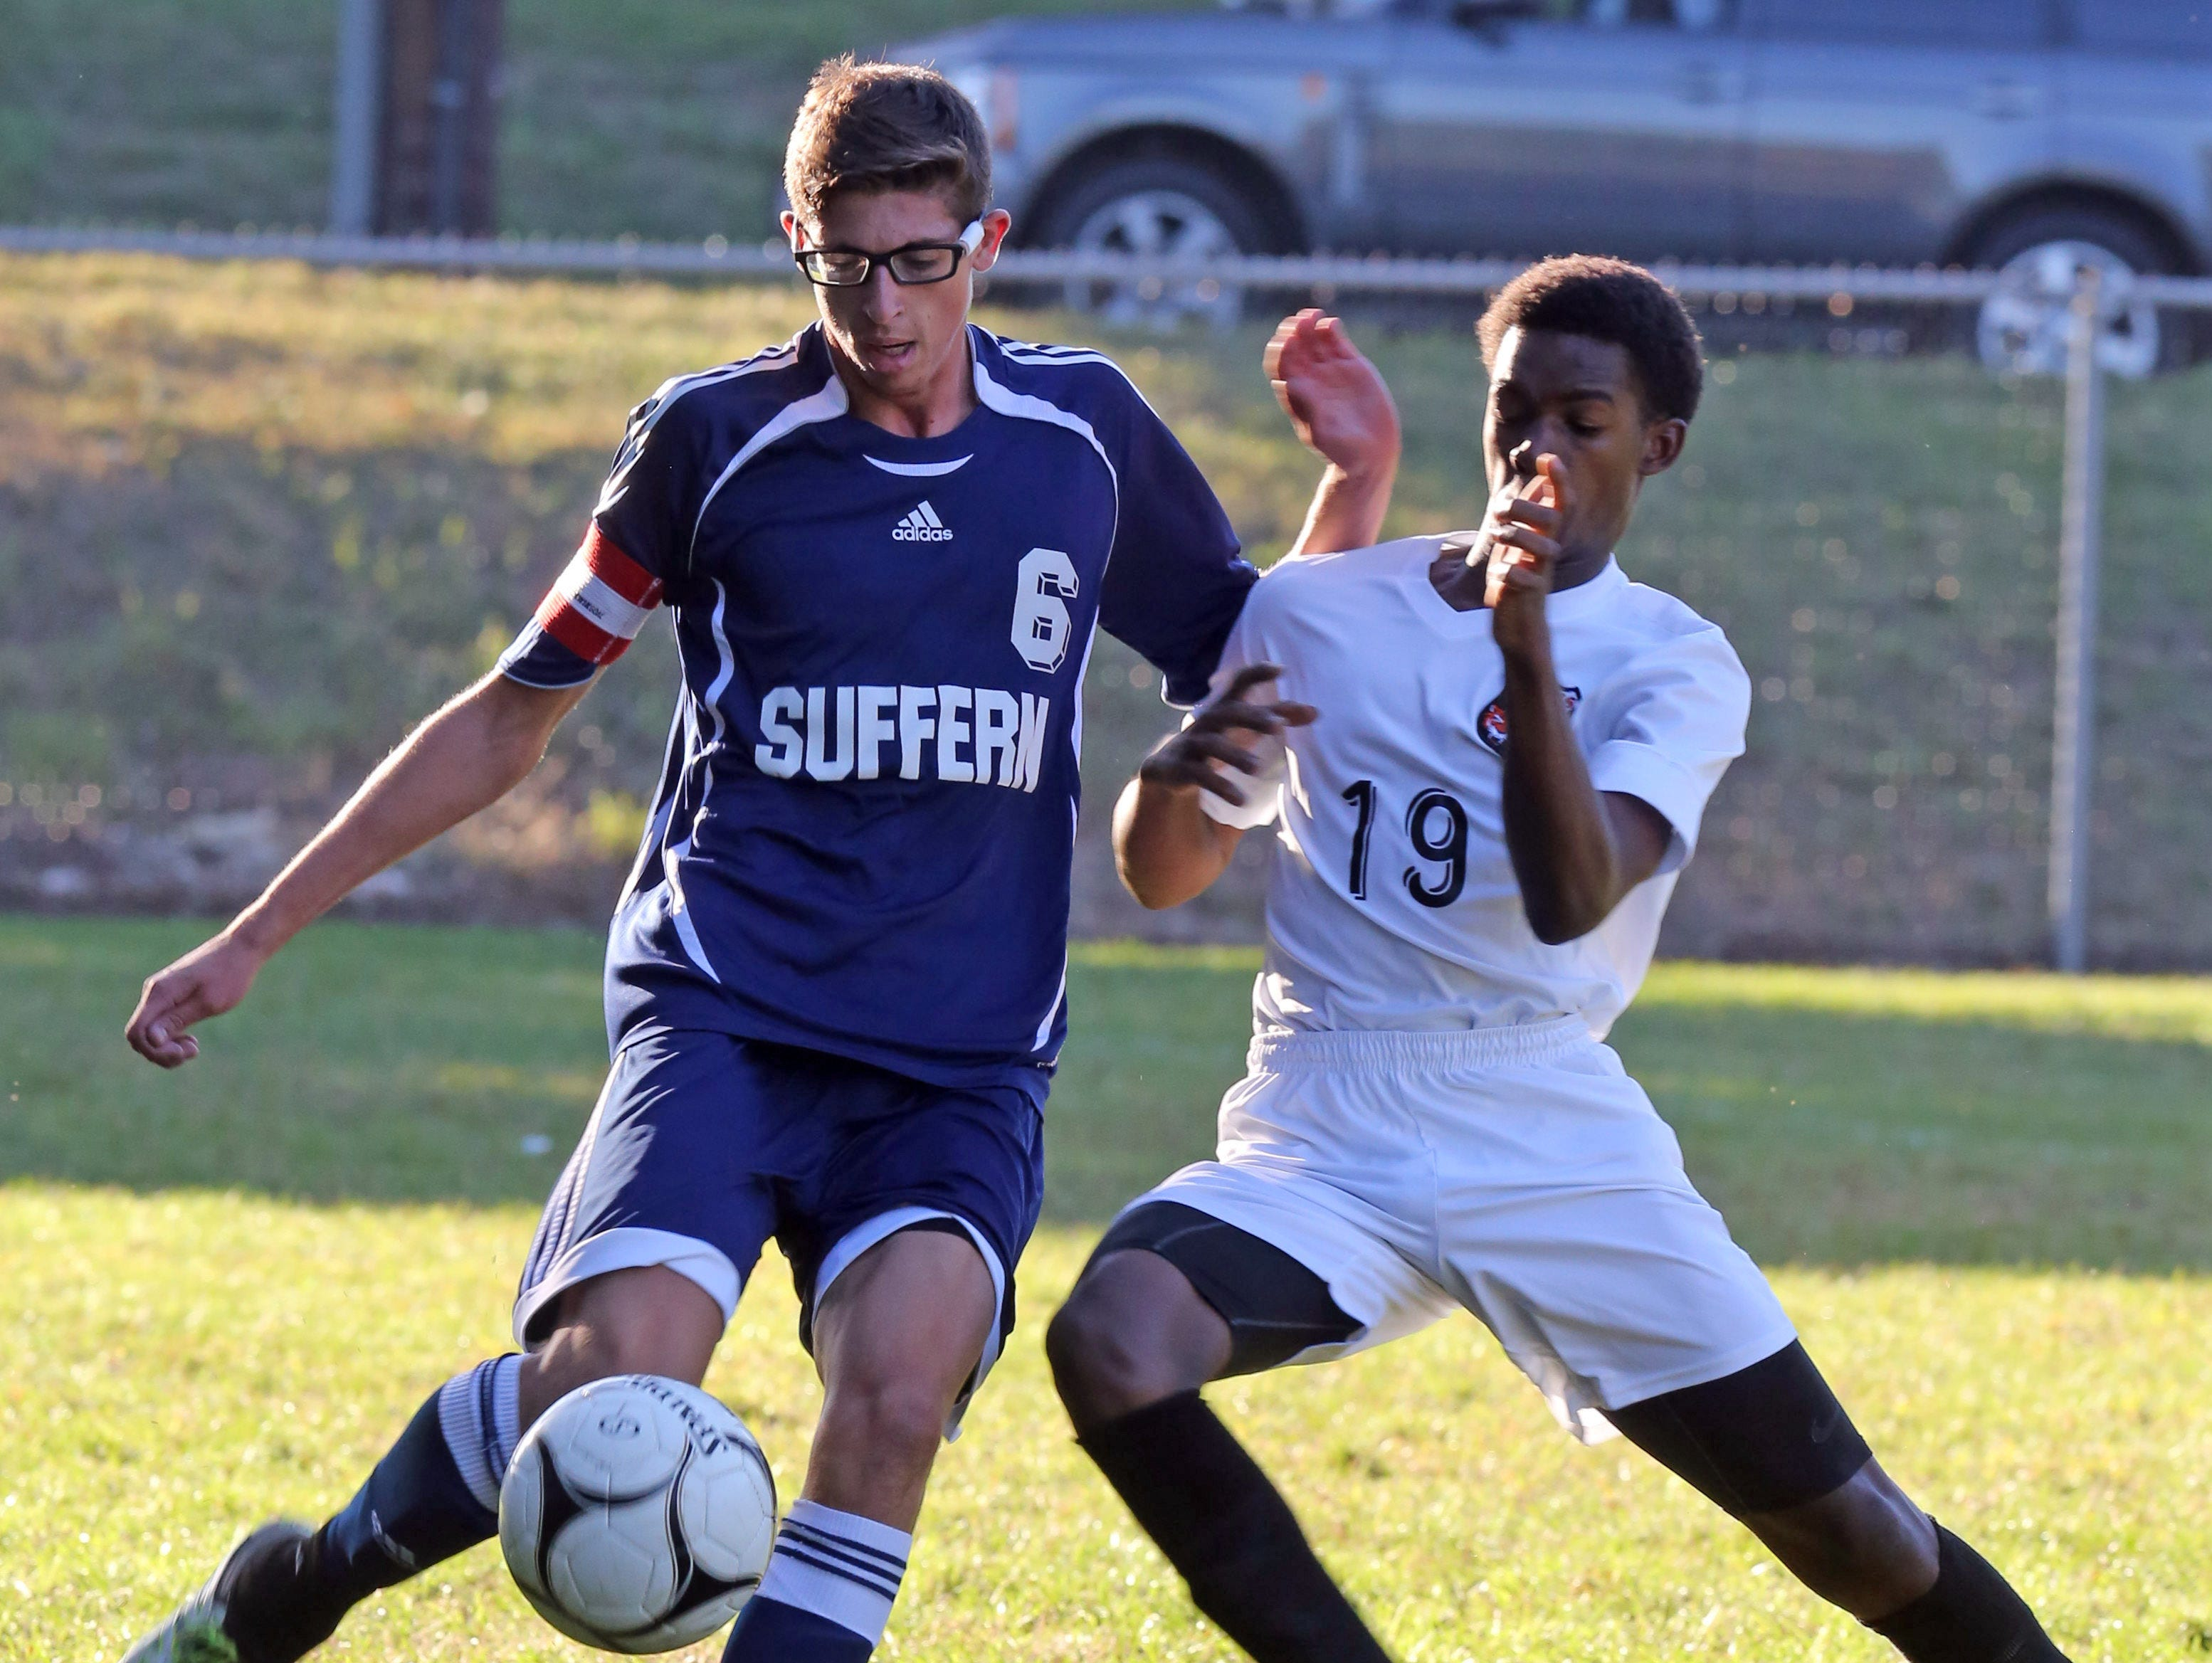 Suffern's Matt Iaria (6) and Spring Valley's Reedson Therneus (19) battles for control of the ball during boys soccer at Spring Valley High School on Oct. 6, 2016.